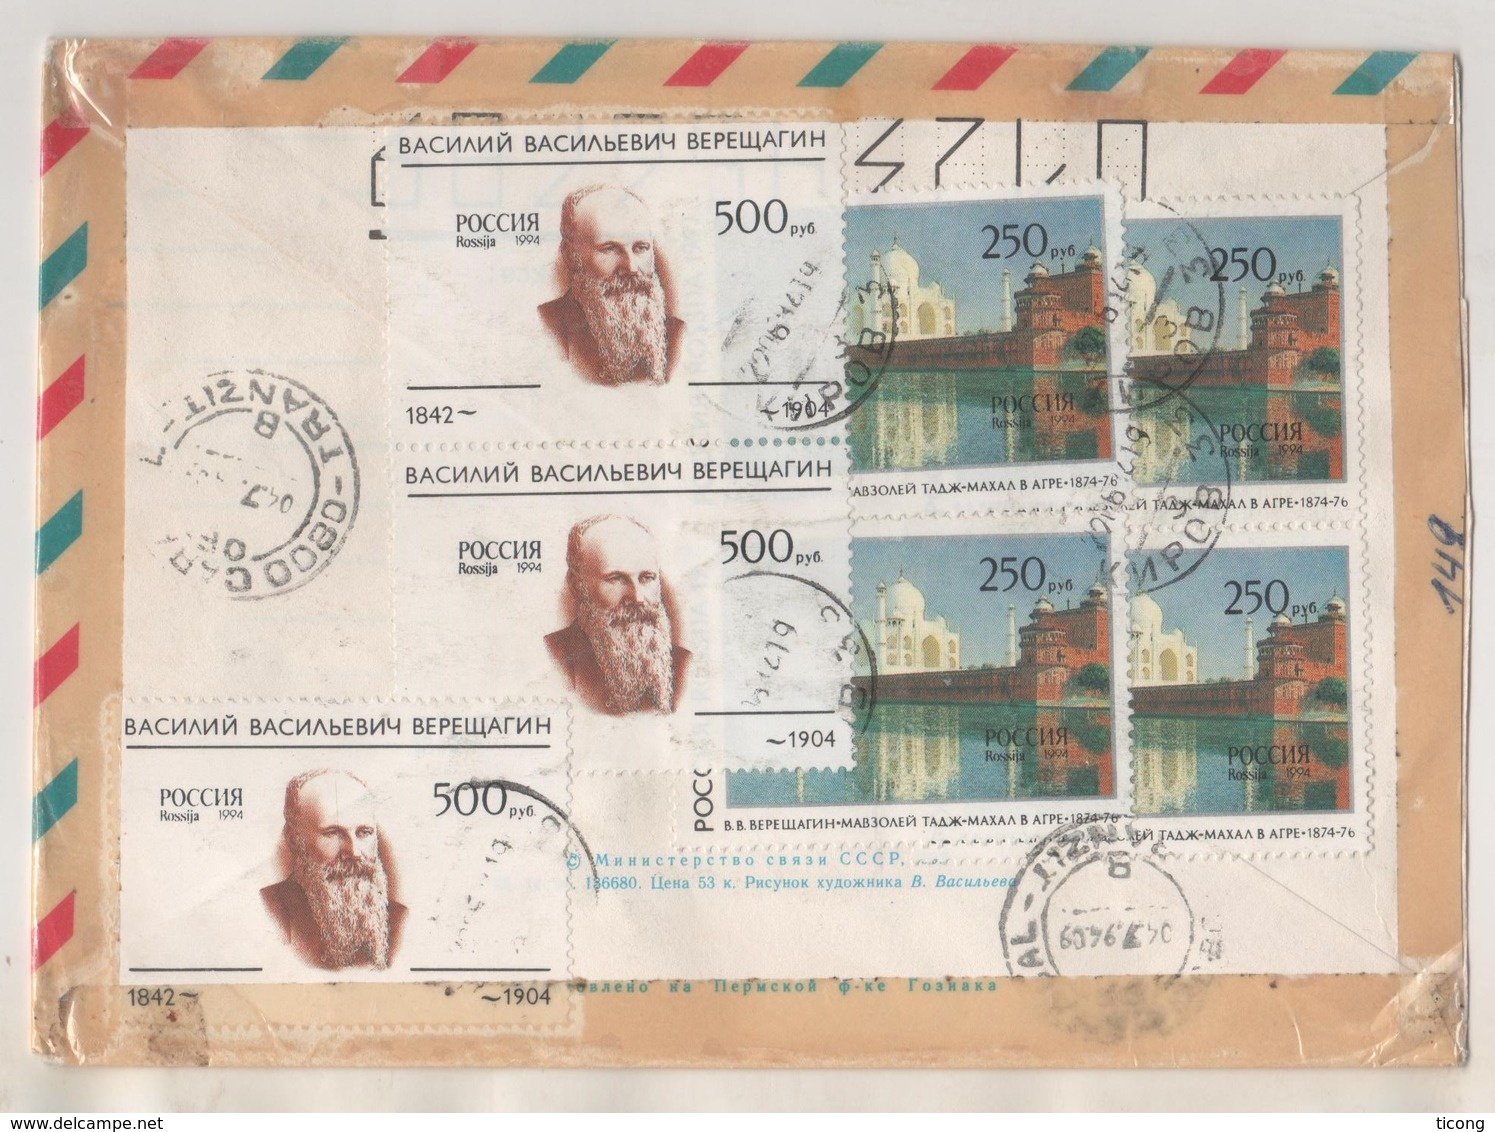 RUSSIE LETTRE RECOMMANDEE ENTIER POSTAL POUR LA ROUMANIE 1994 - TIMBRE HANDBALL SURCHARGE 150 - DOCUMENT AYANT VOYAGE - Errors & Oddities